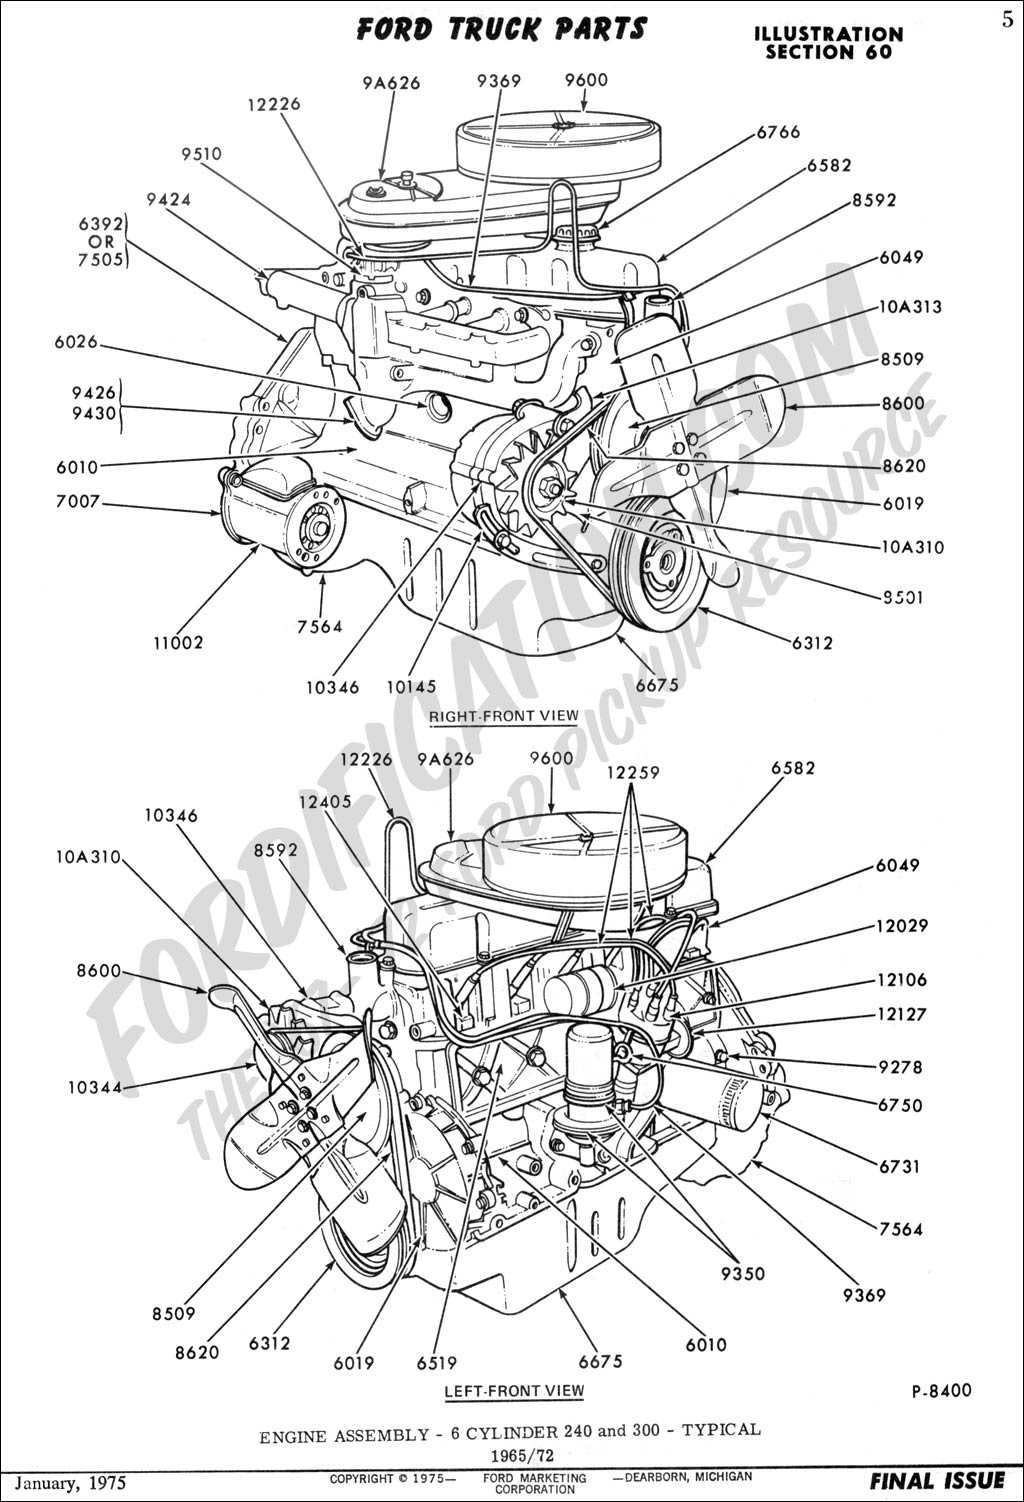 1098391 Oil Pump Location And Replacement on 1986 toyota pickup 22r vacuum diagrams